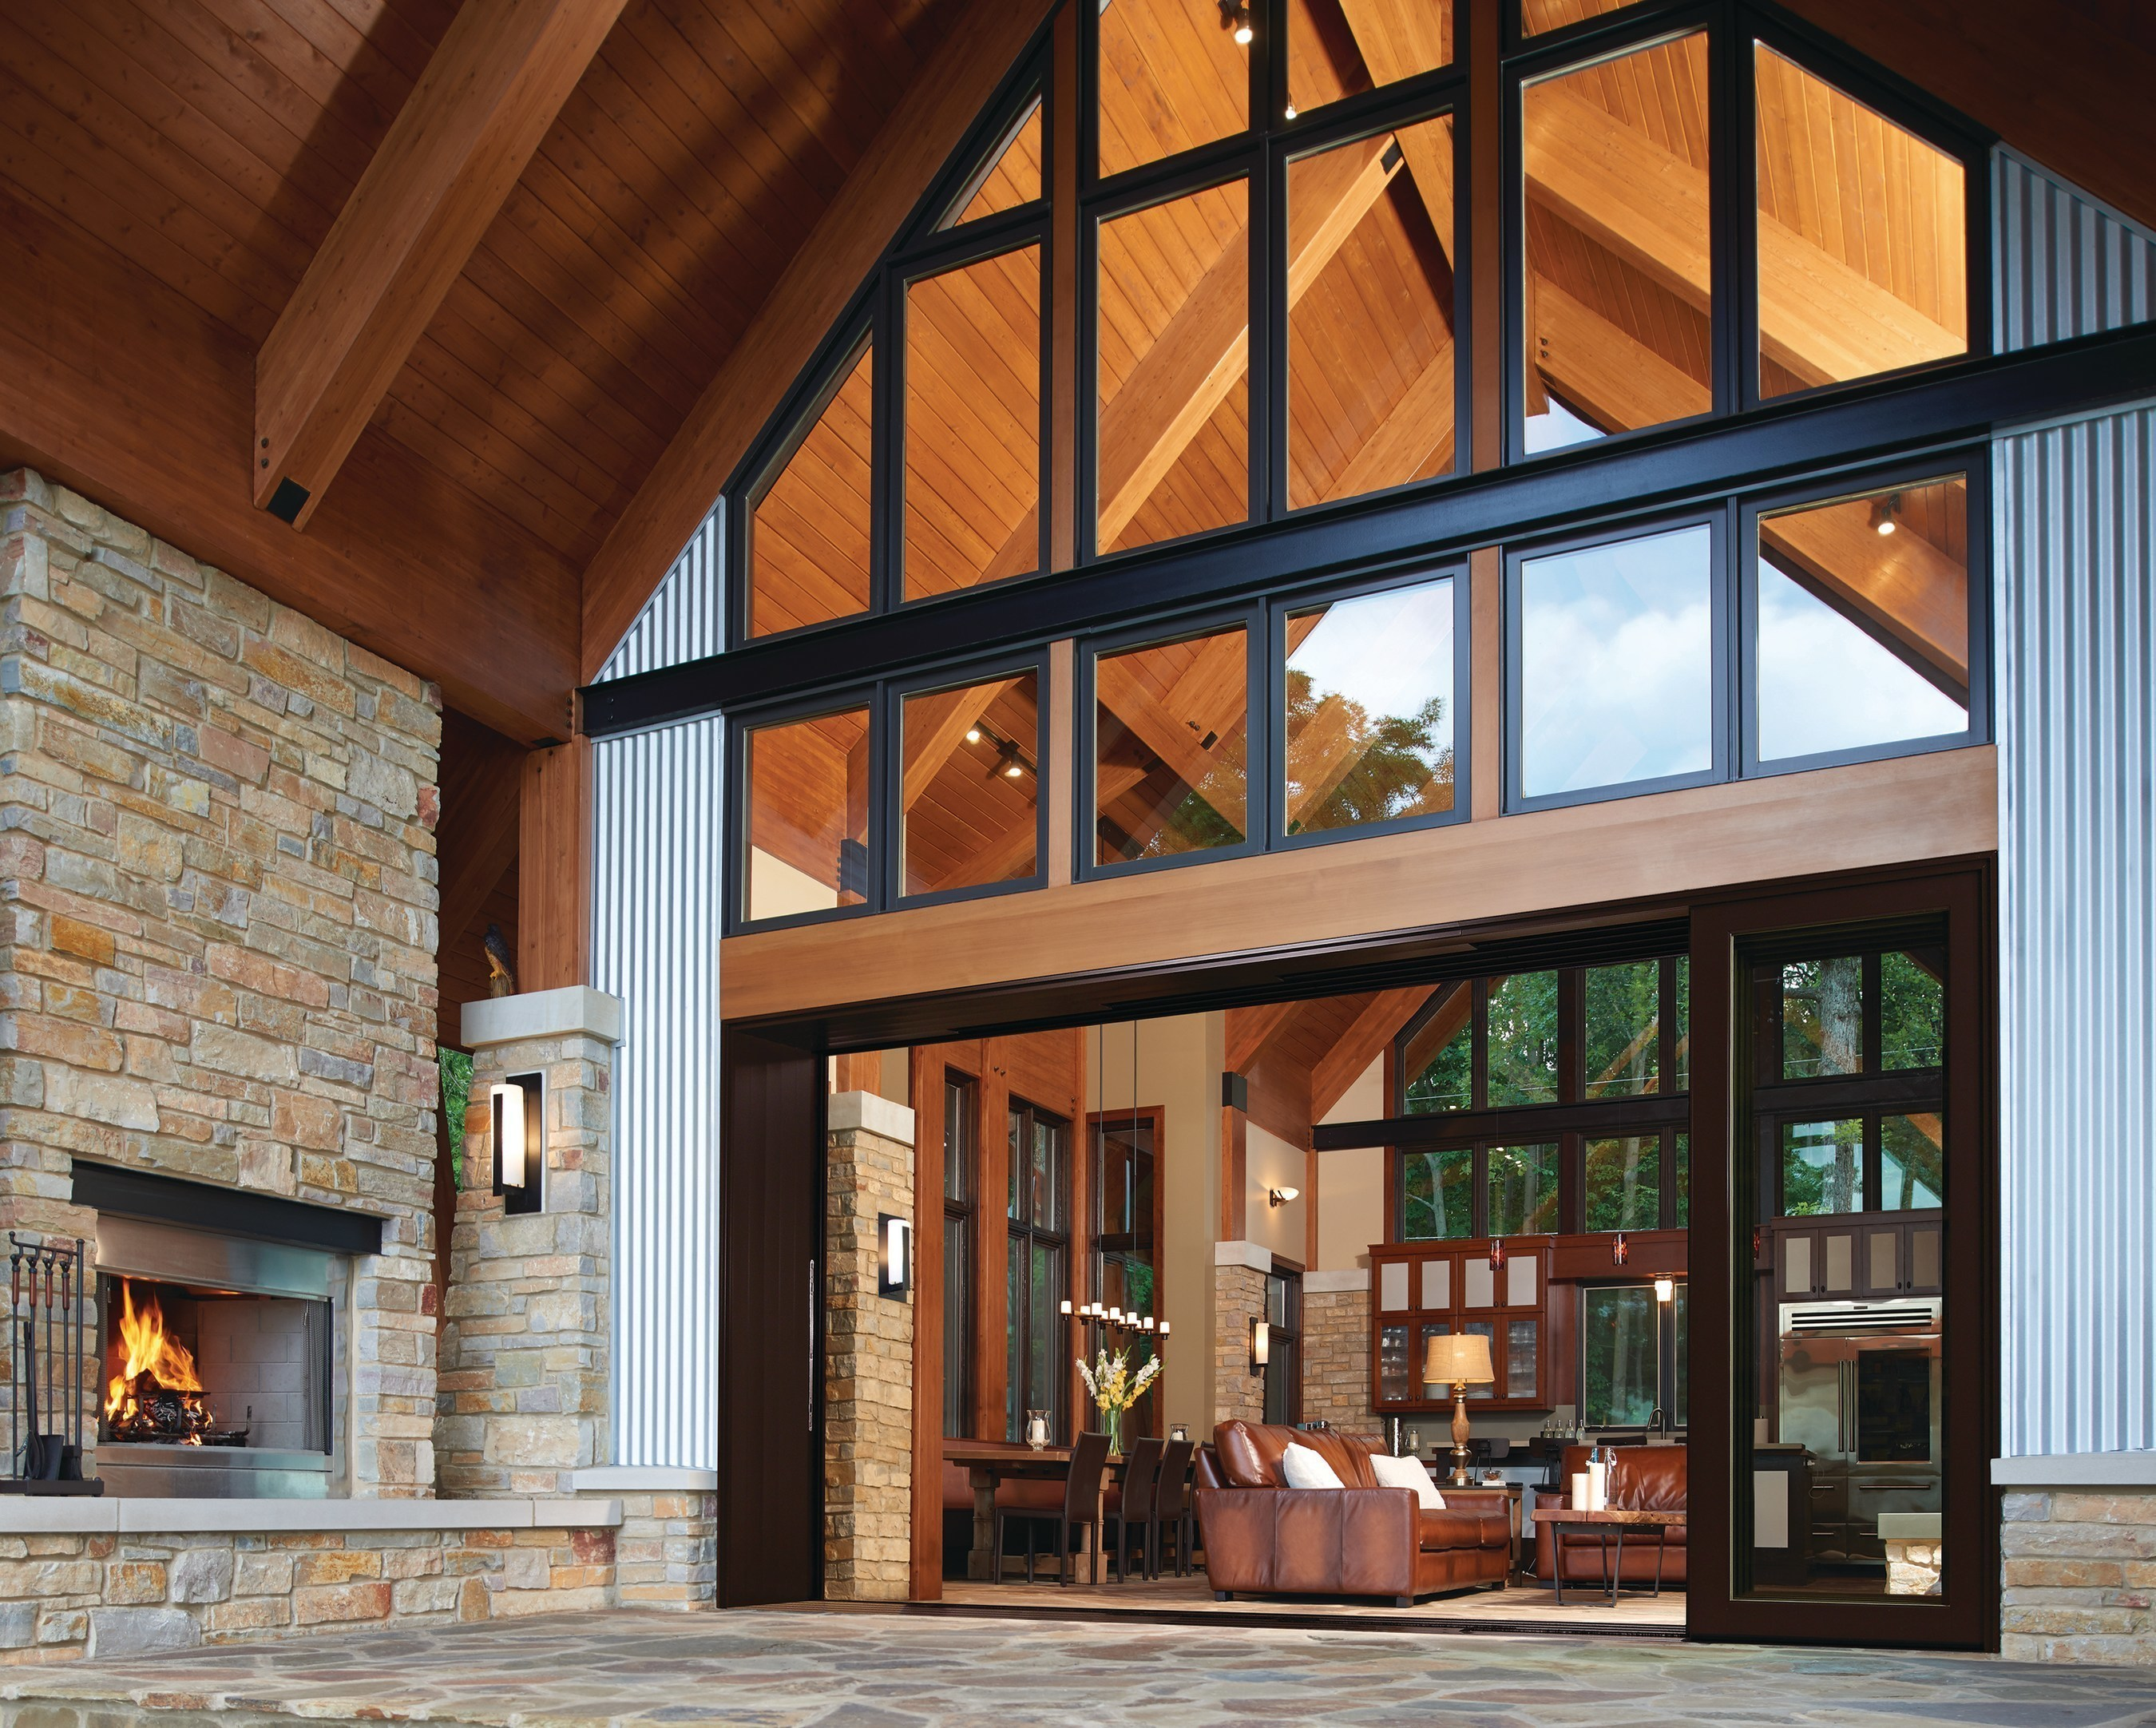 Marvin will be showcasing its very popular Ultimate Multi-Slide Door with new performance options at the International Builders' Show, held Jan. 19-21 in Las Vegas.